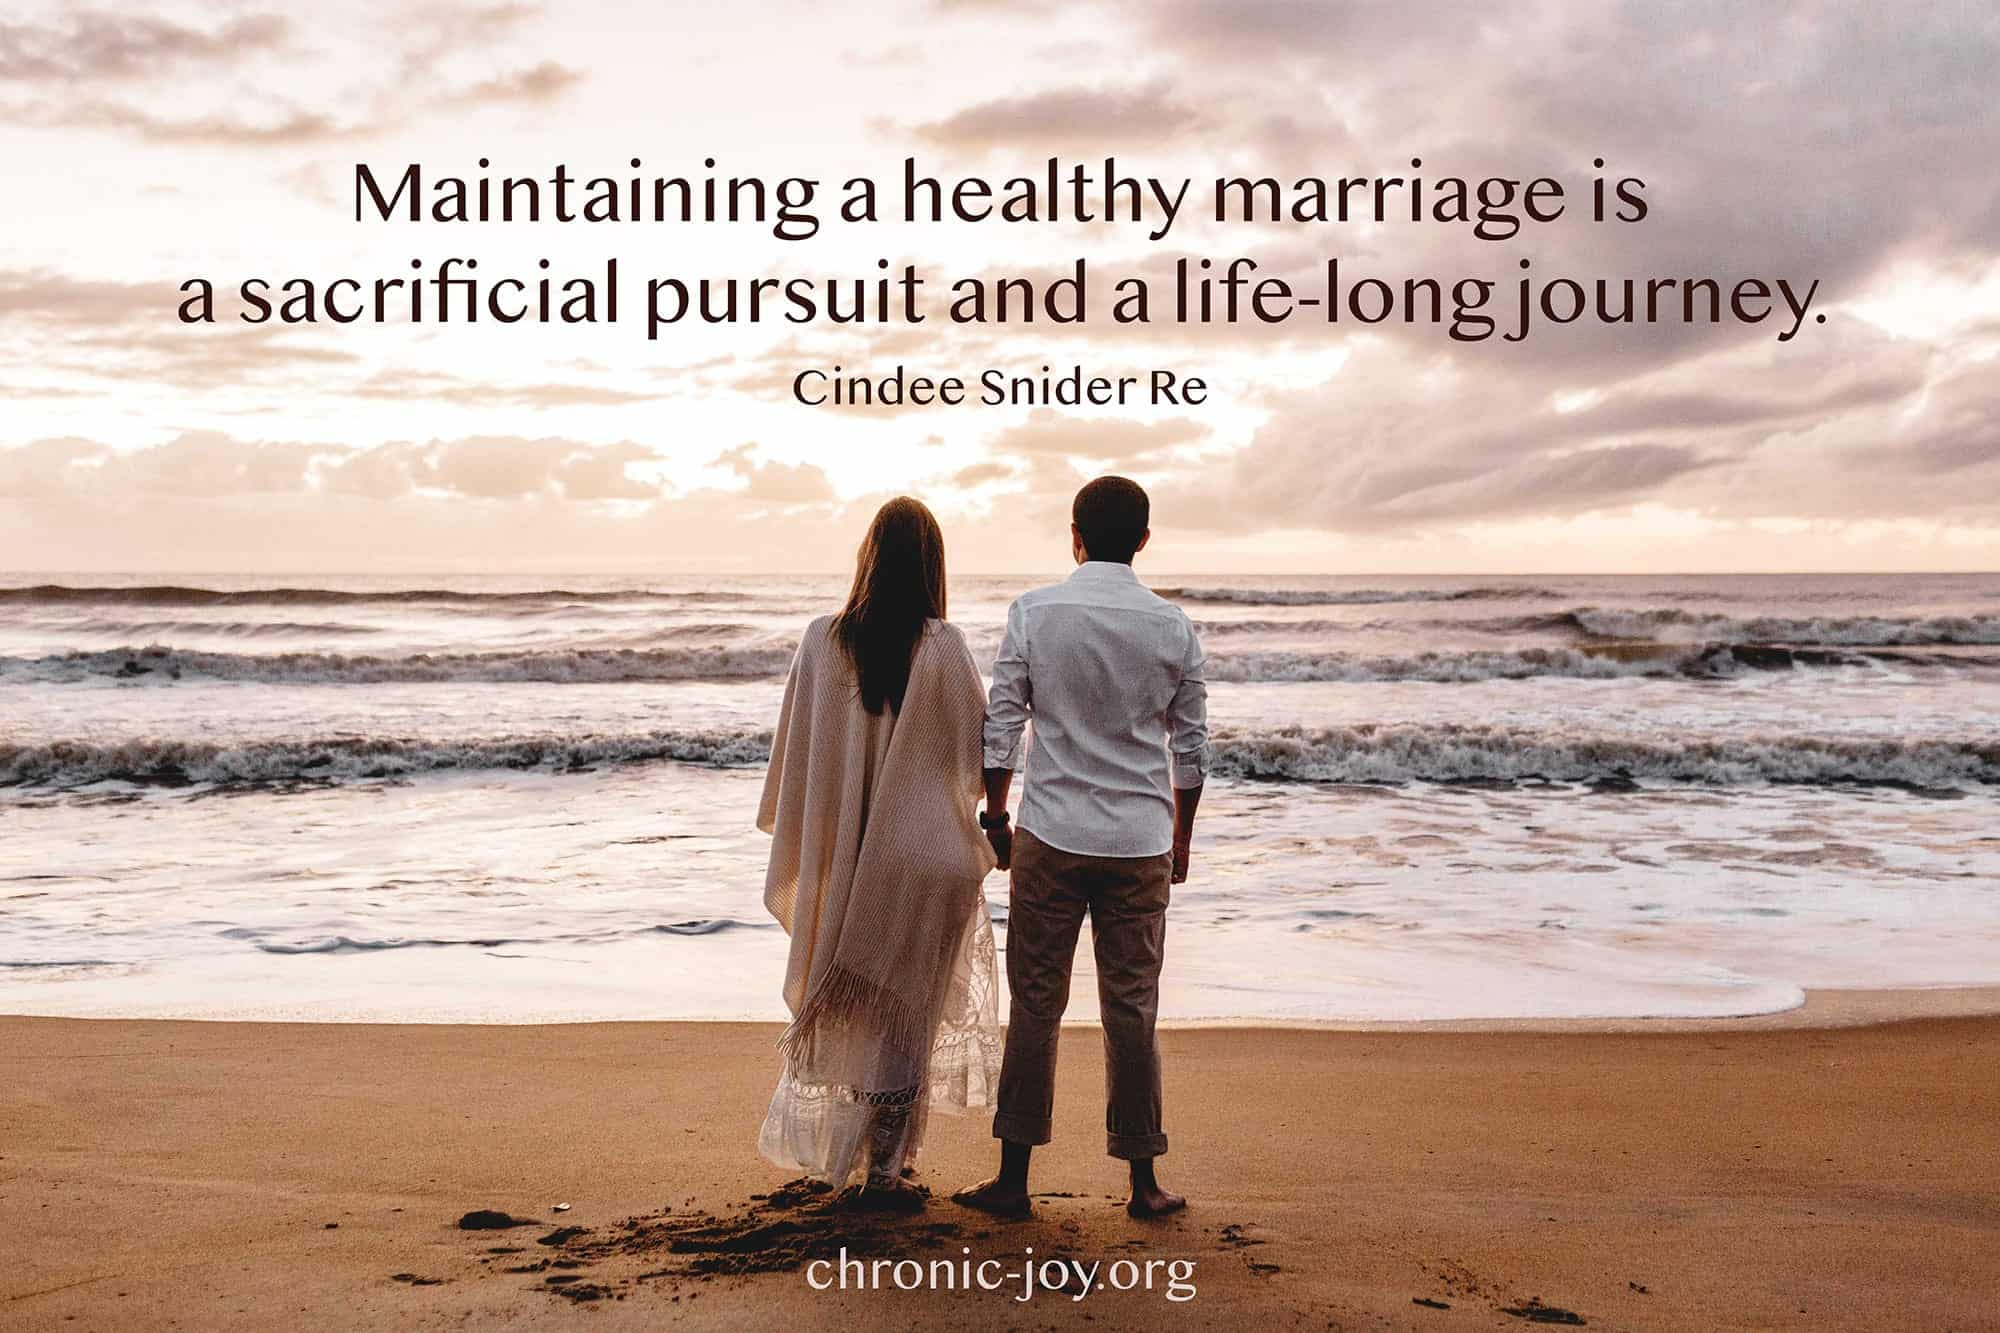 """Maintaining a healthy marriage is a sacrificial pursuit and a life-long journey."" Cindee Snider Re"